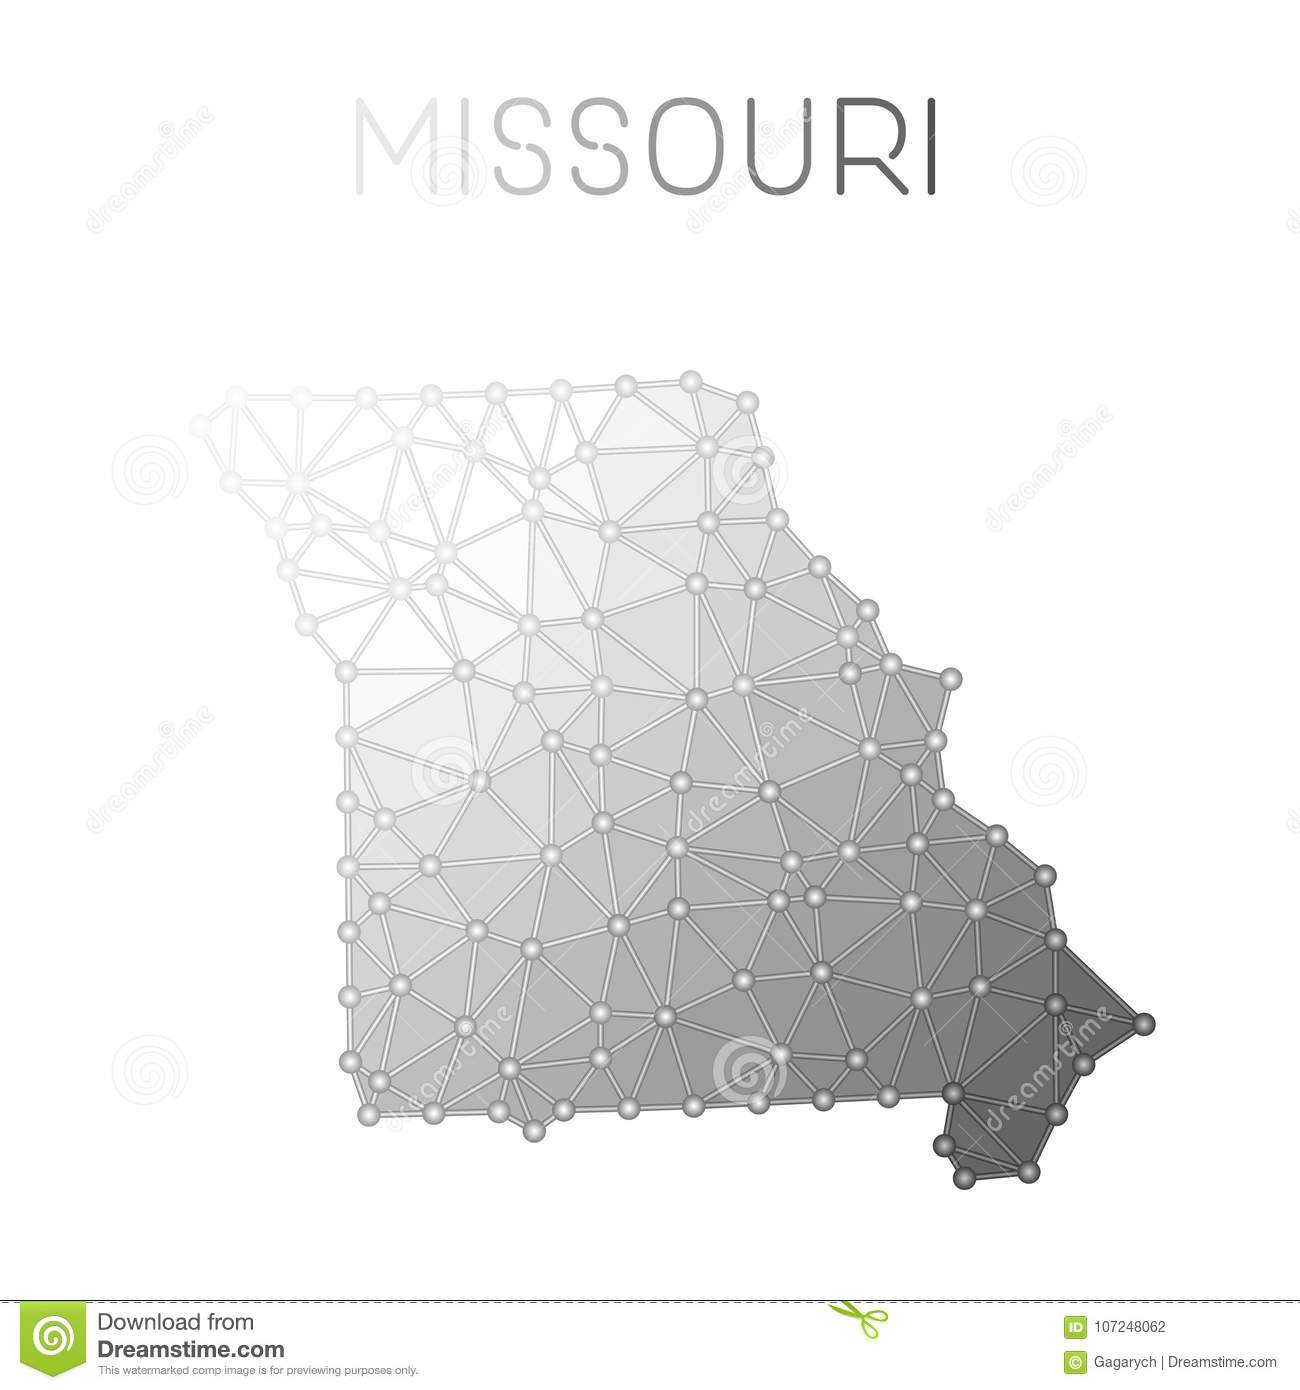 Missouri Polygonal Vector Map Stock Vector Illustration Of